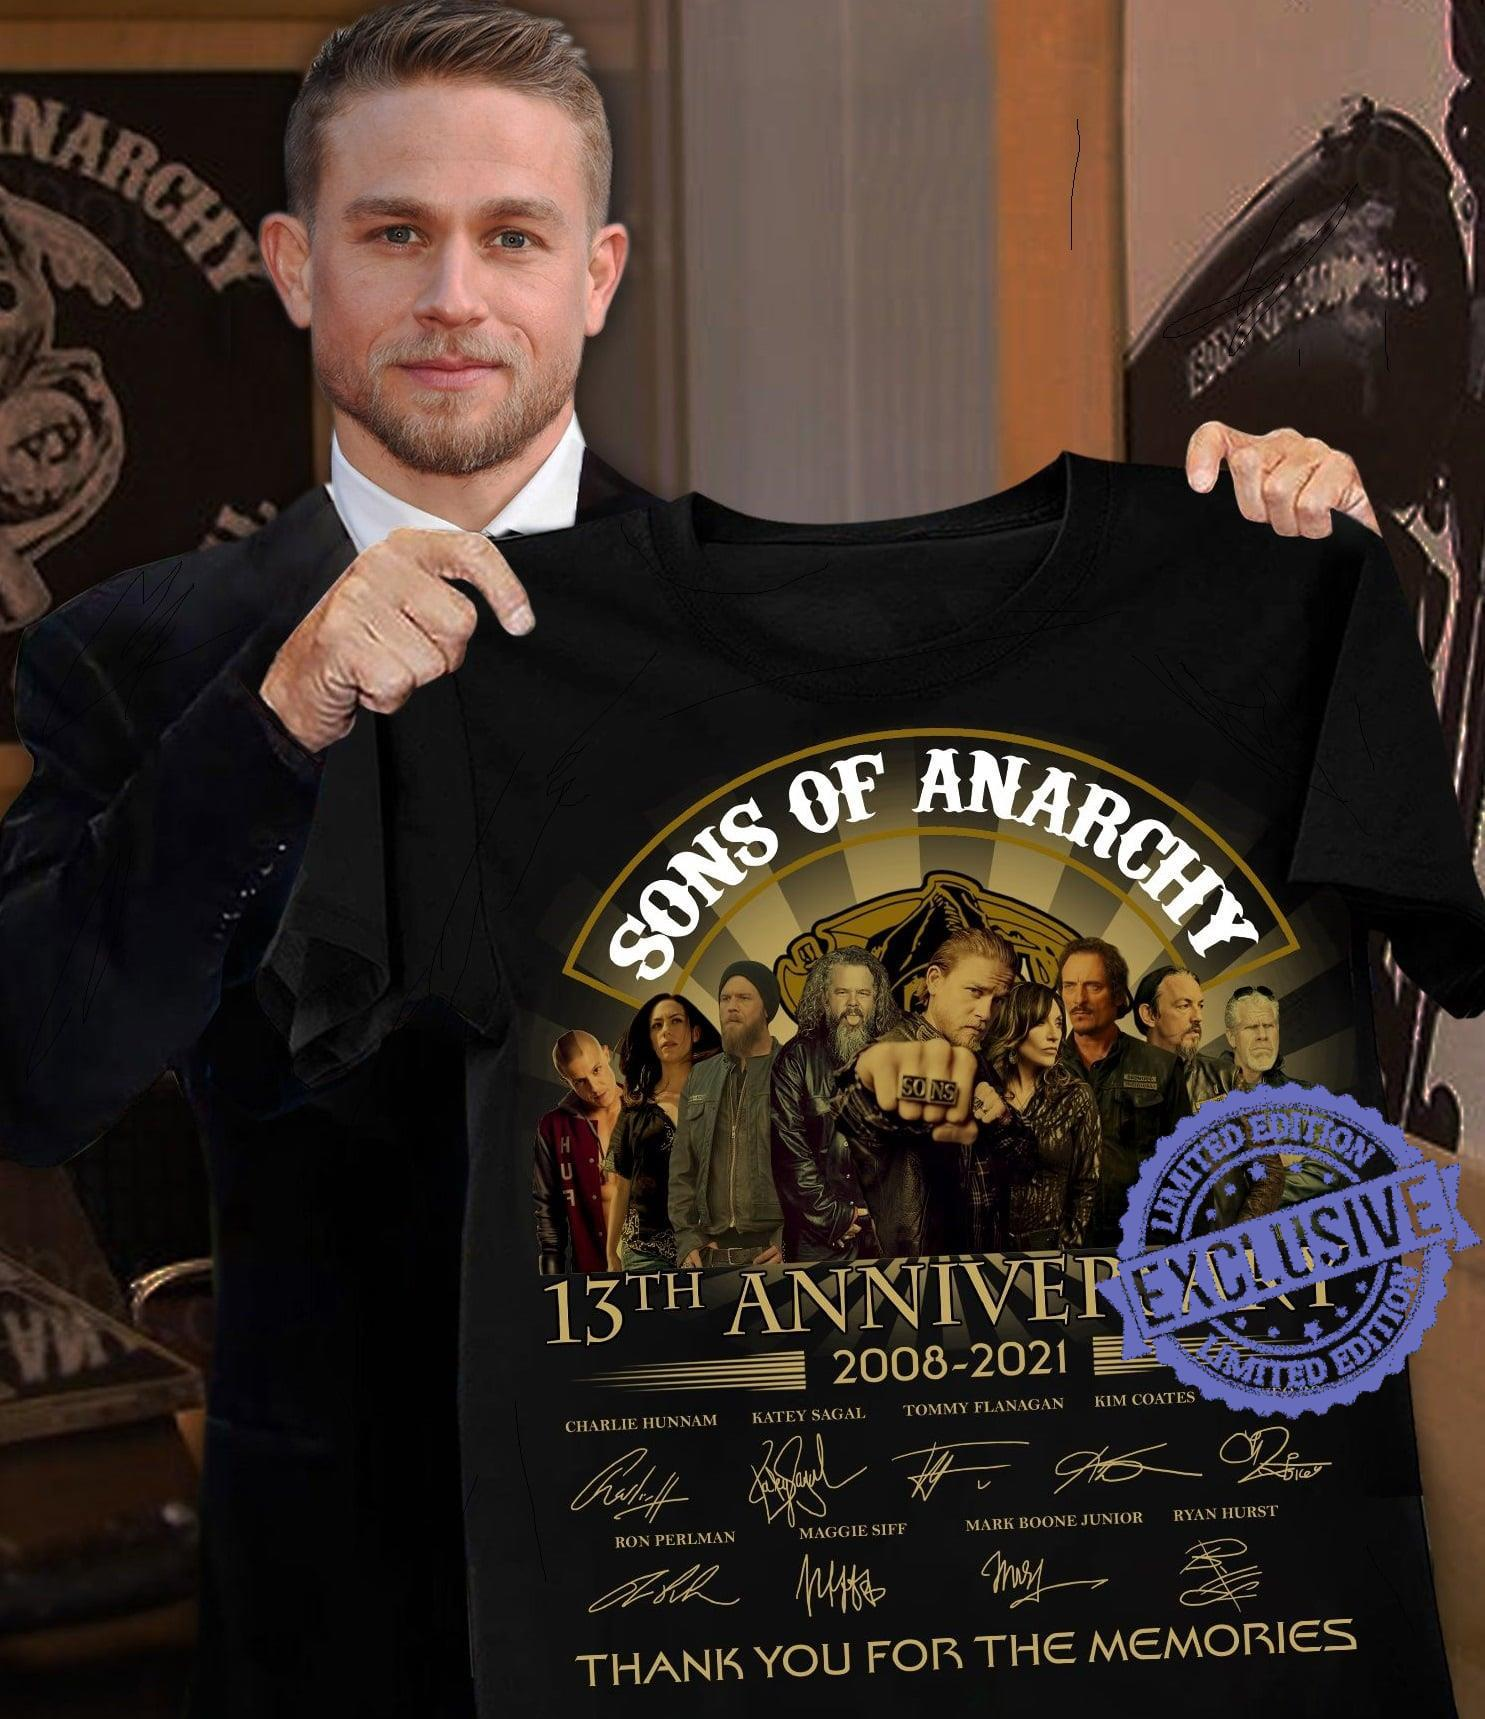 Sons of anarchy 13th anniversary 2008 2021 thank you for the memories shirt